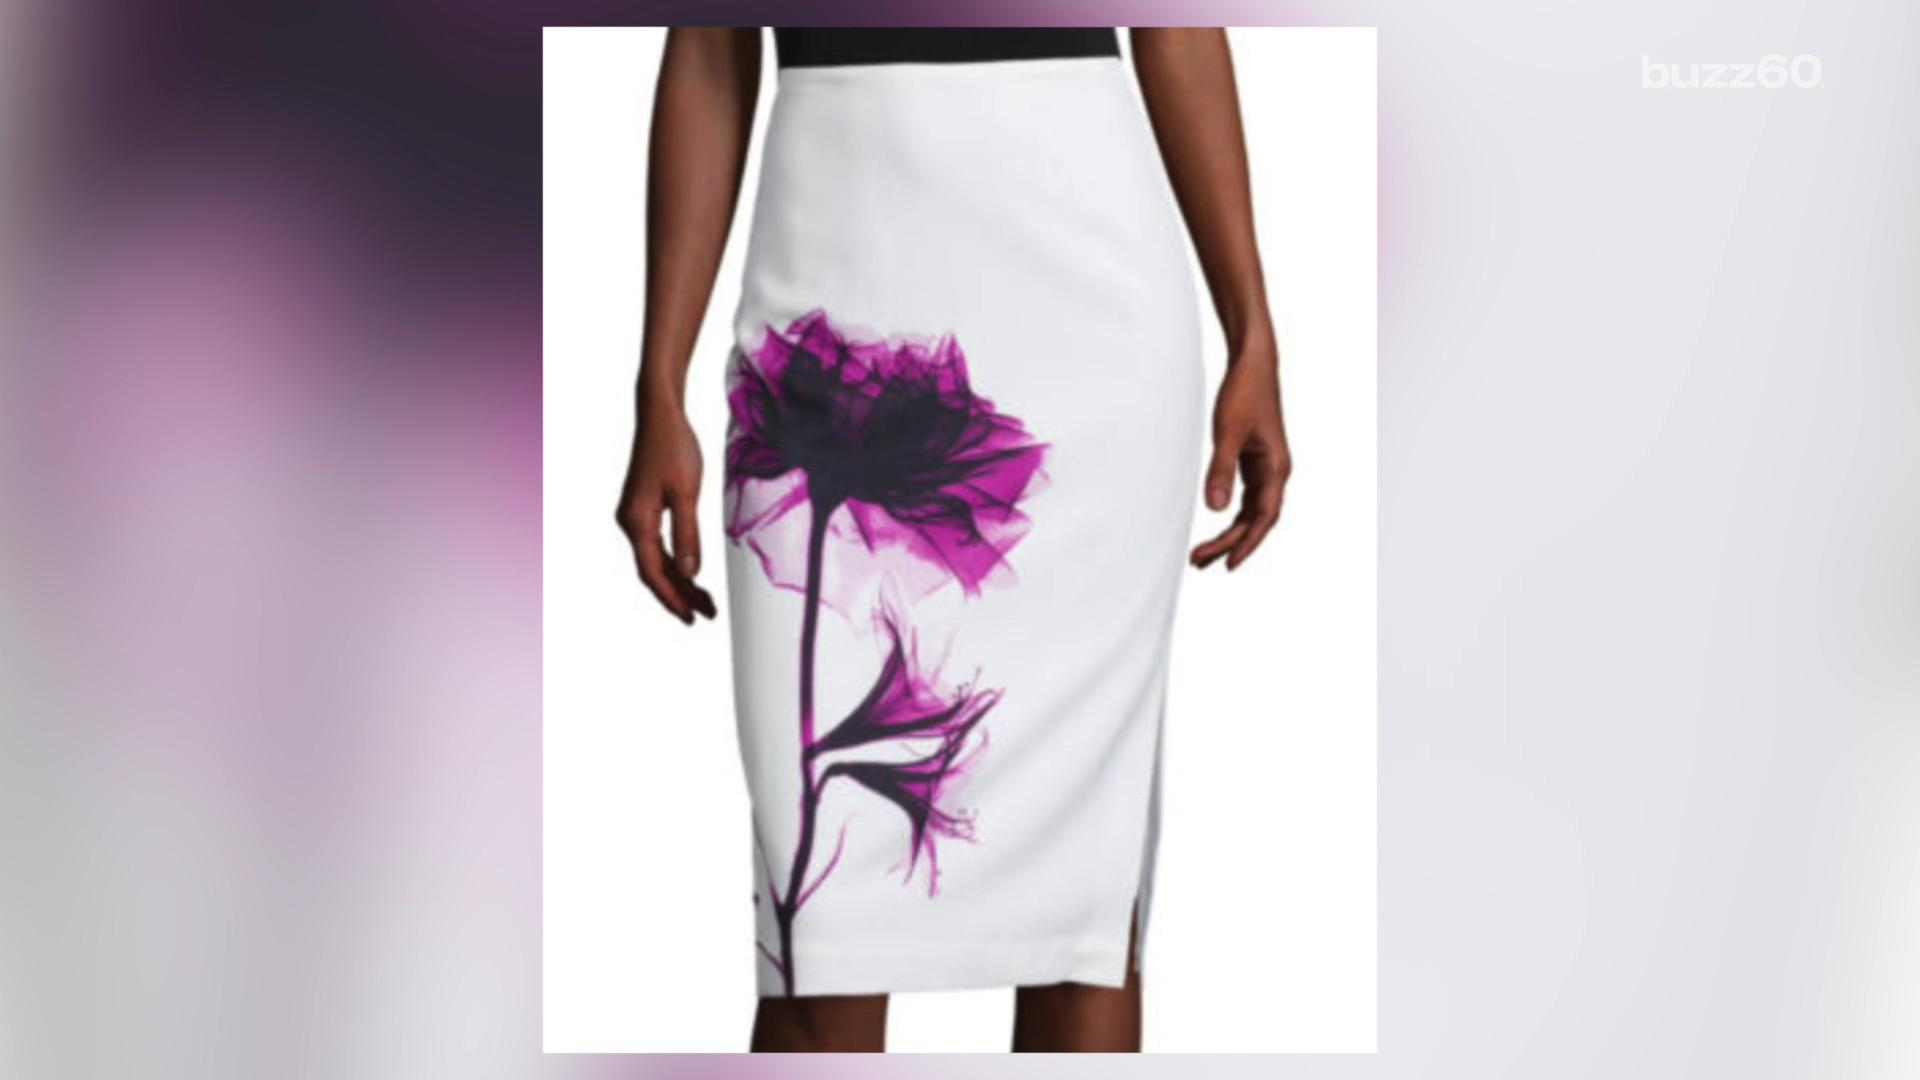 J.C. Penney Responds To People Freaking Out Over So-Called 'Period Skirt' | HuffPost Life